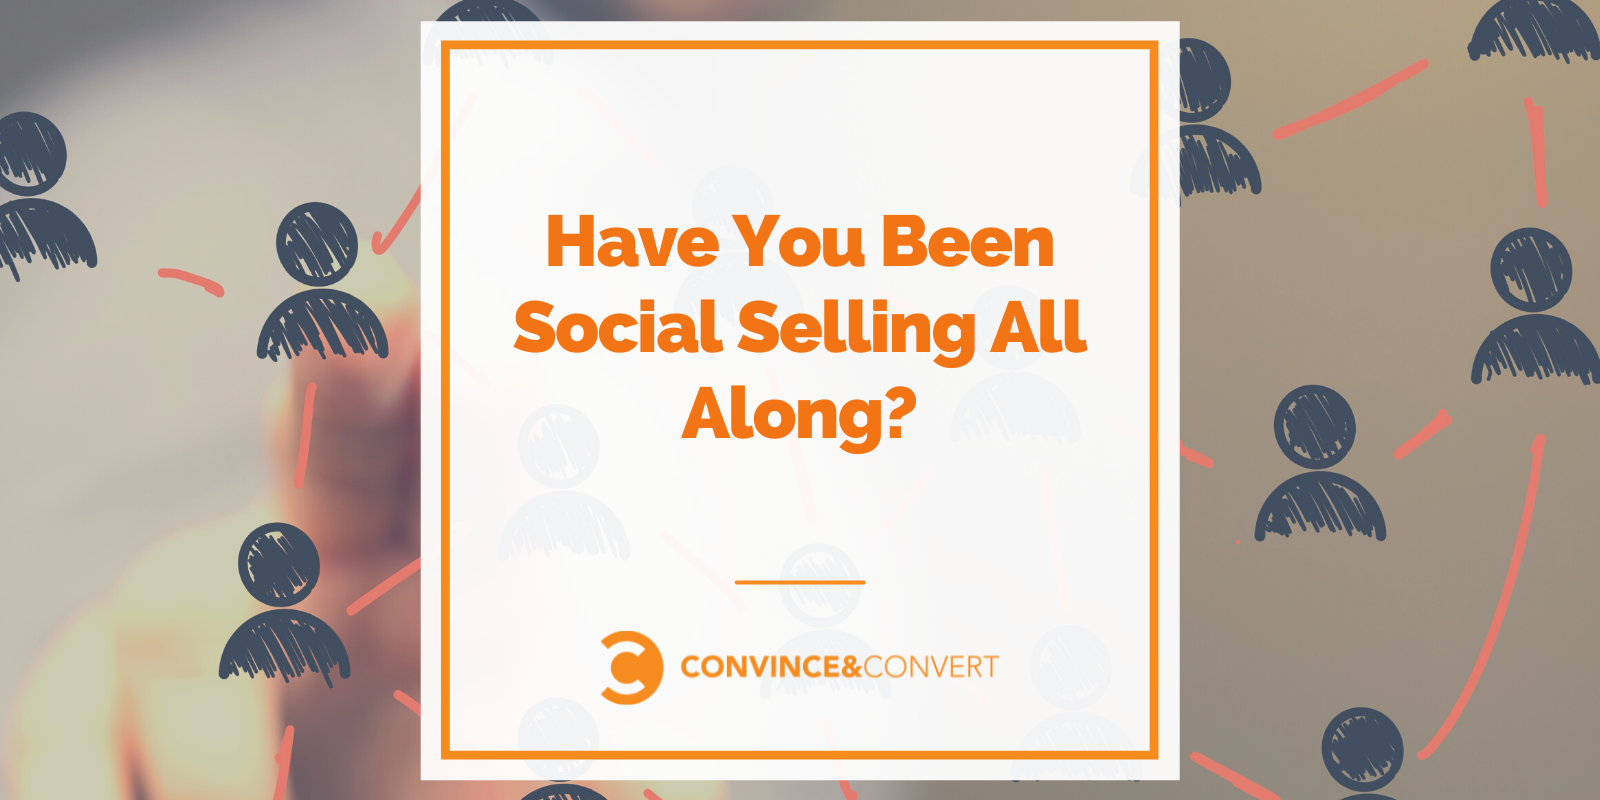 Beget You Been Social Selling All Along?